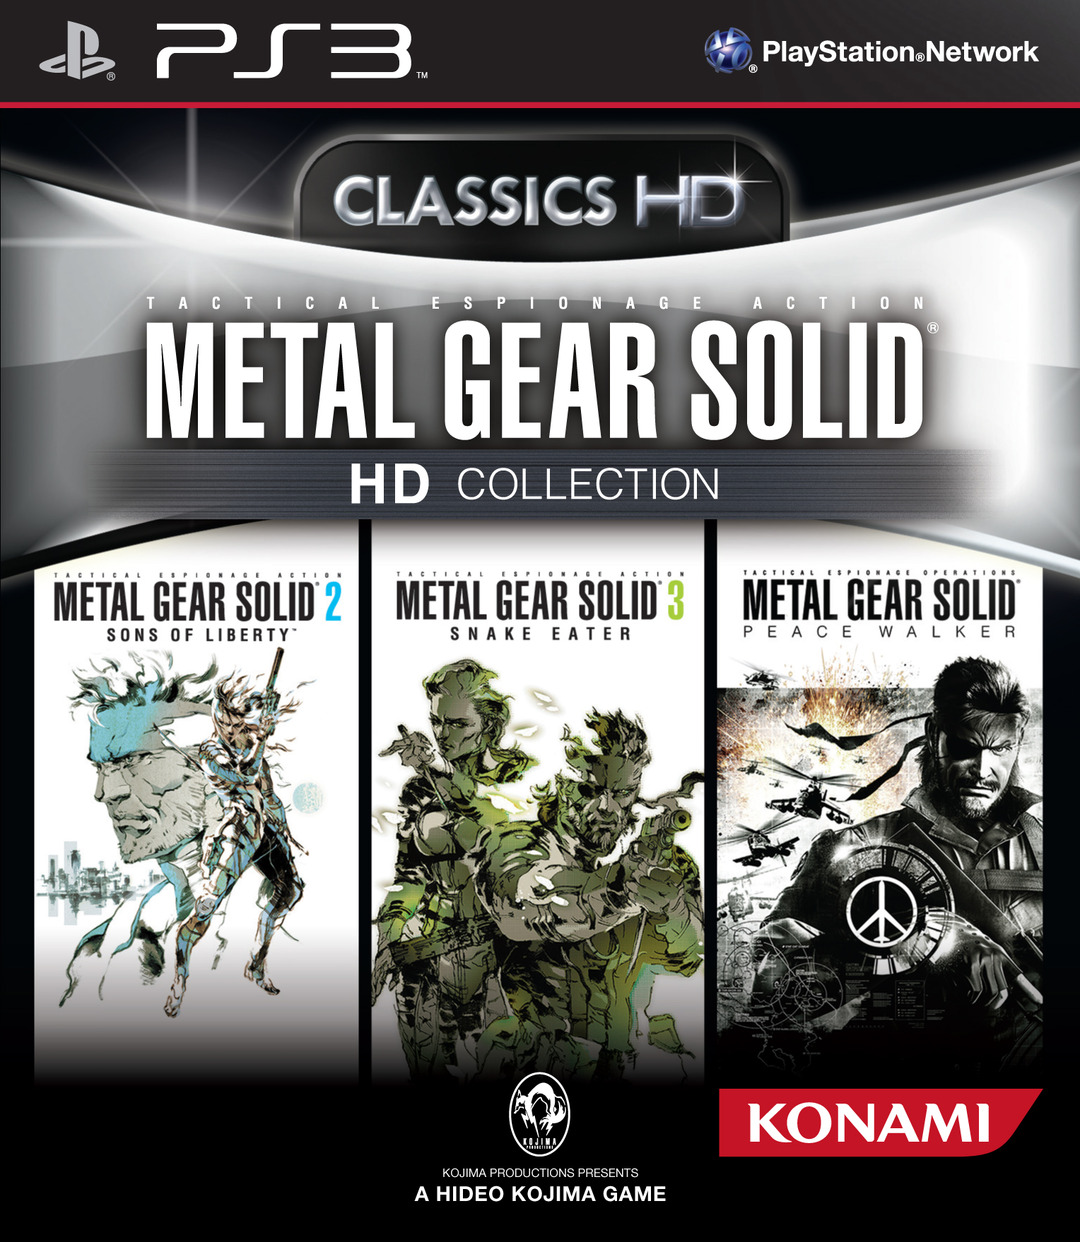 jaquette-metal-gear-solid-hd-collection-playstation-3-ps3-cover-avant-g-1313607065.jpg